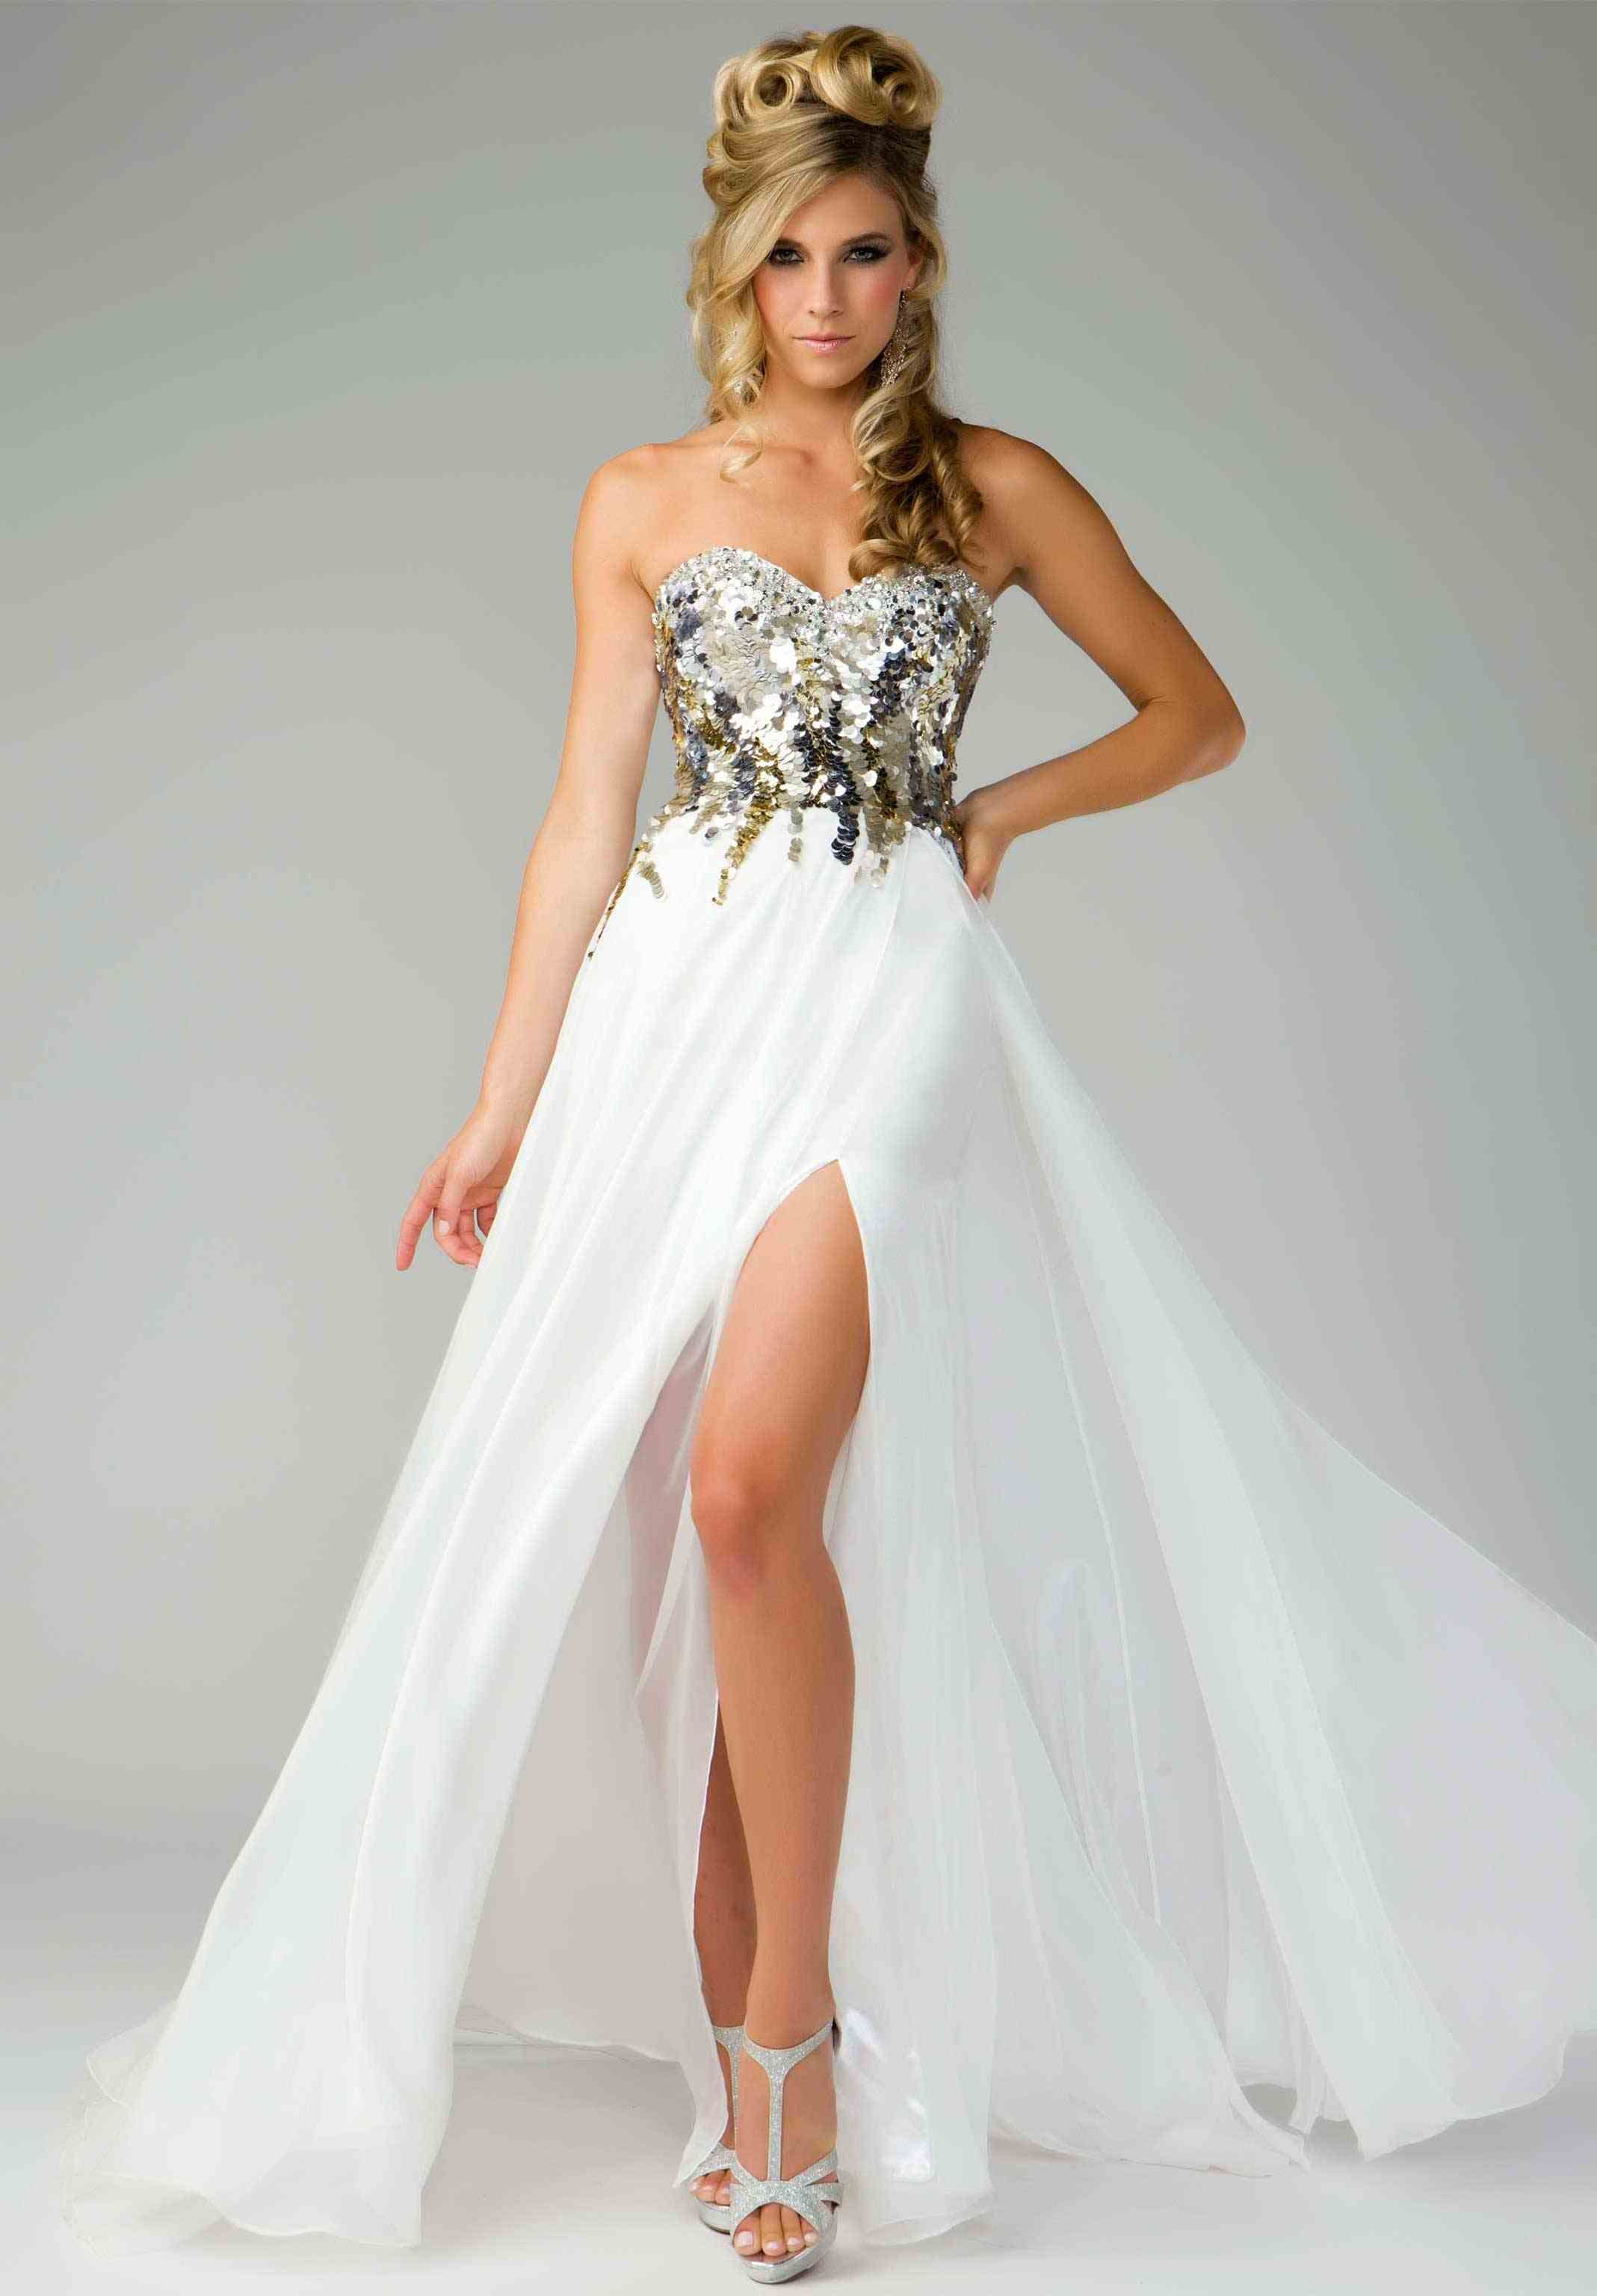 White gold sparkly prom dress 2014 corsets lingerie for White sparkly wedding dress